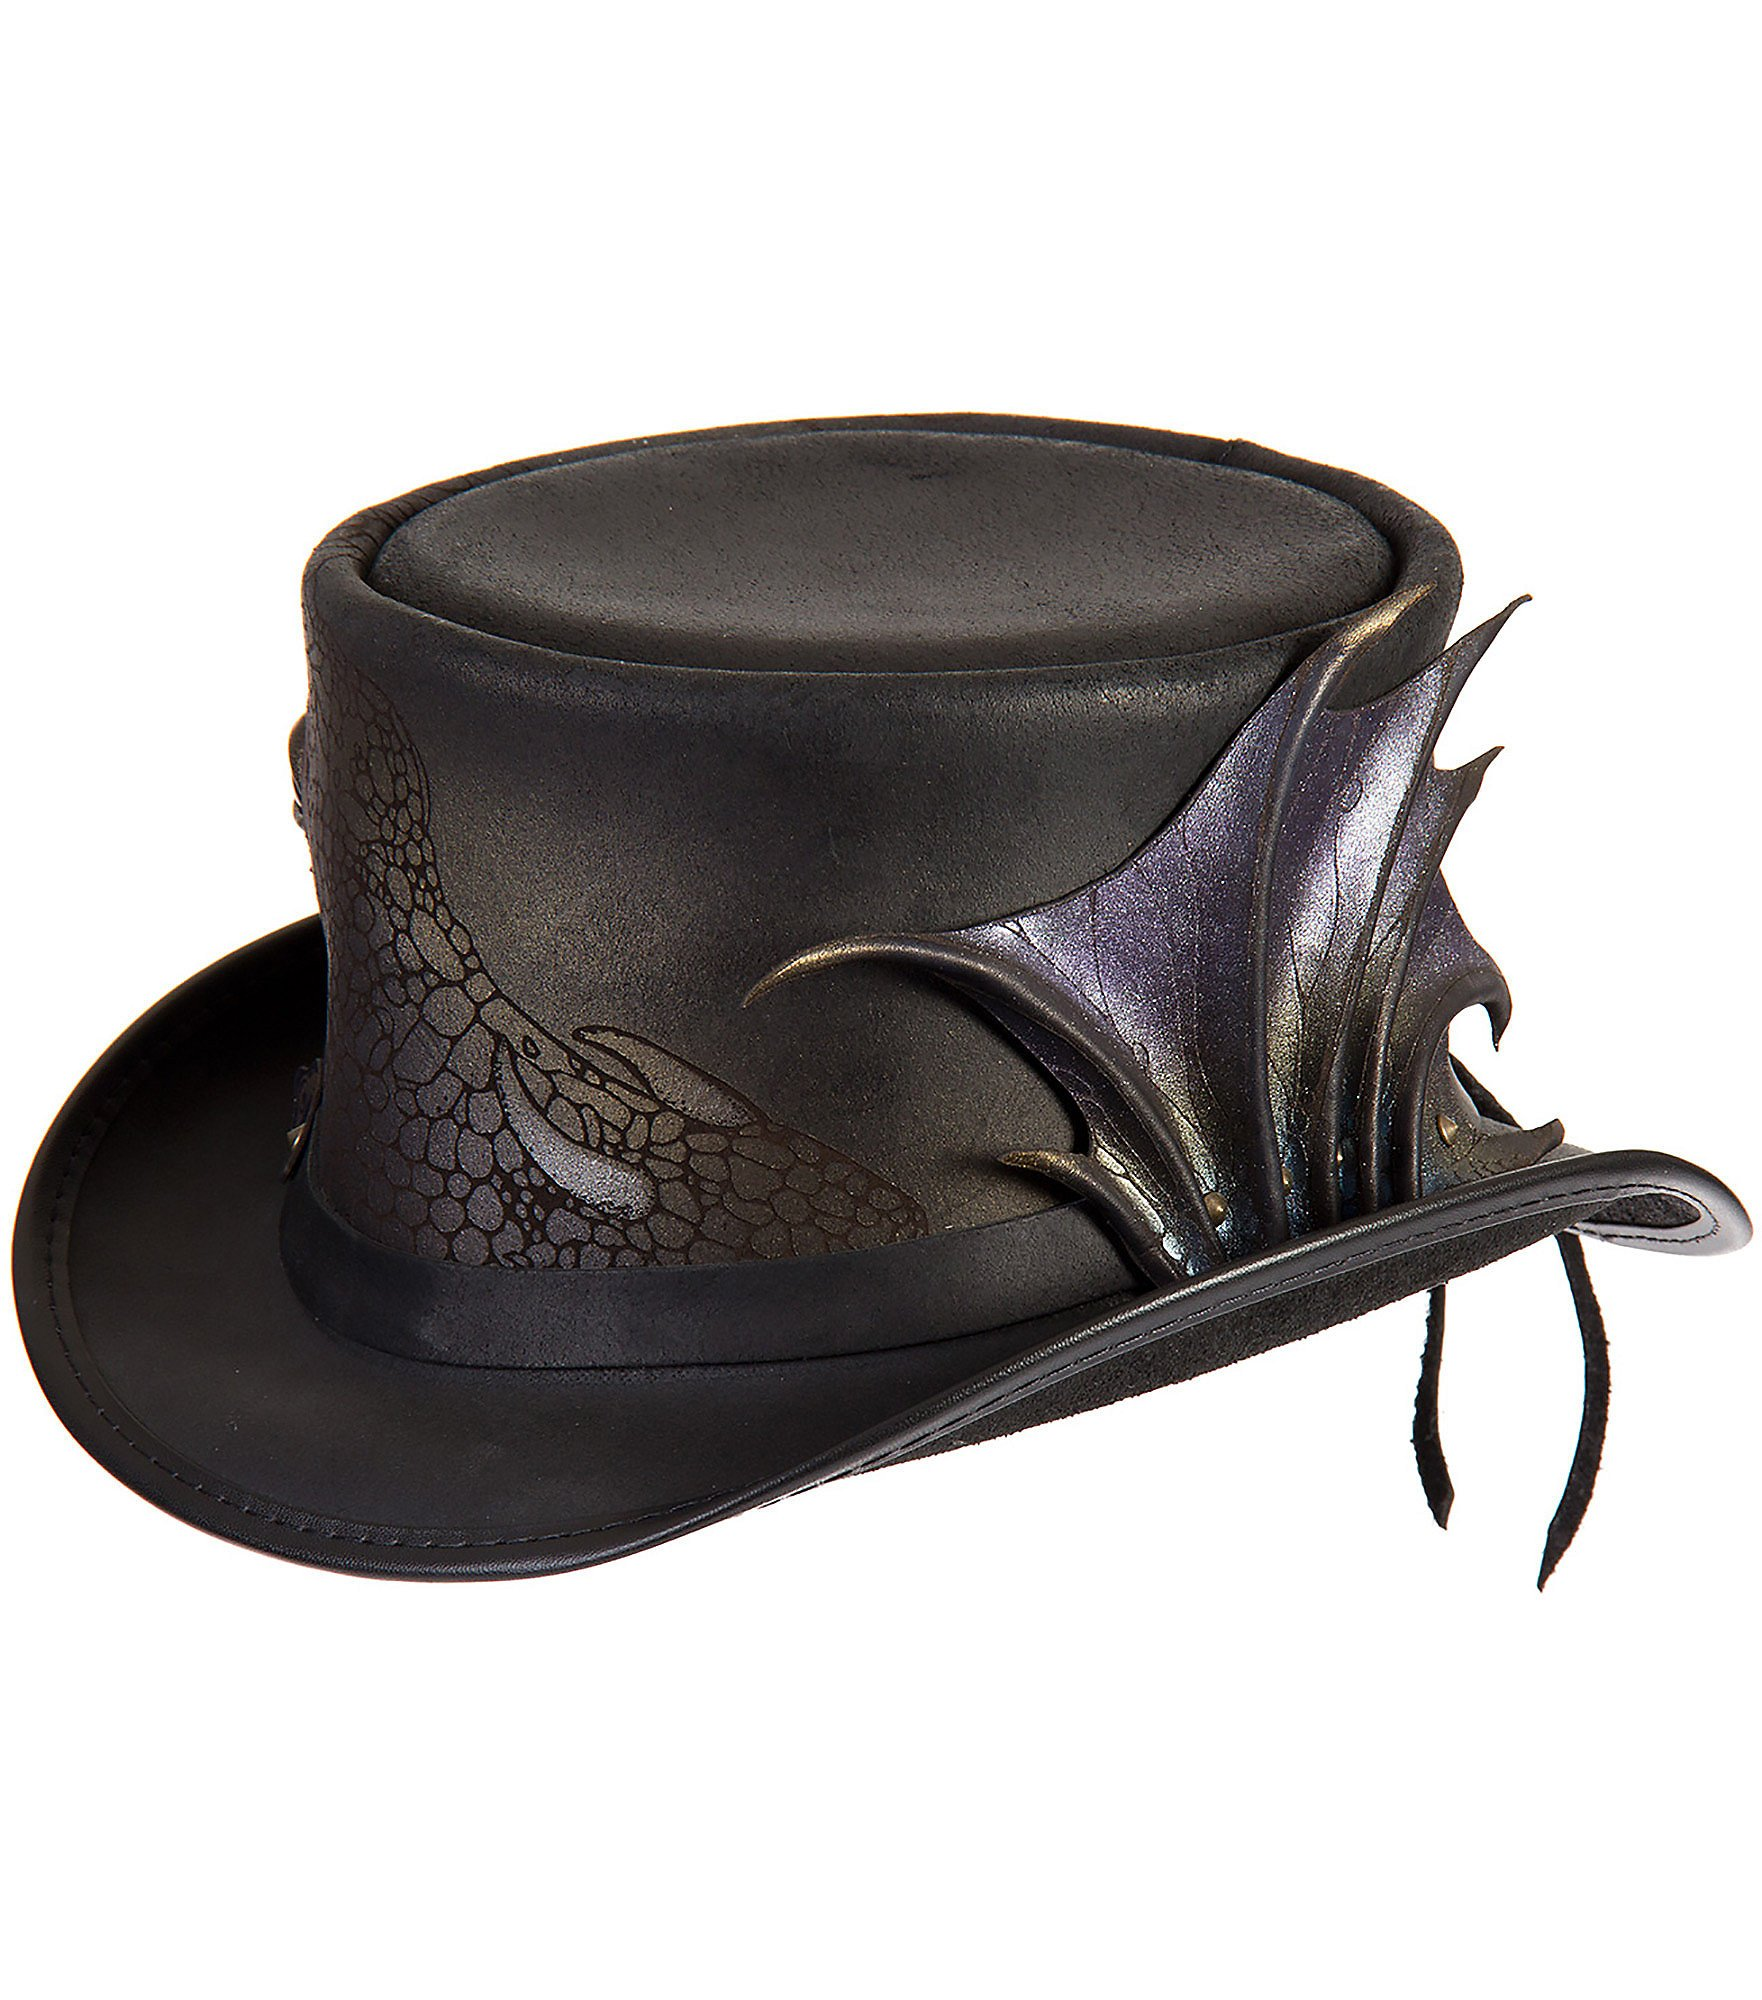 Overland Sheepskin Co. Steampunk Draco Leather Top Hat, Black, Size Large (7 3/8)